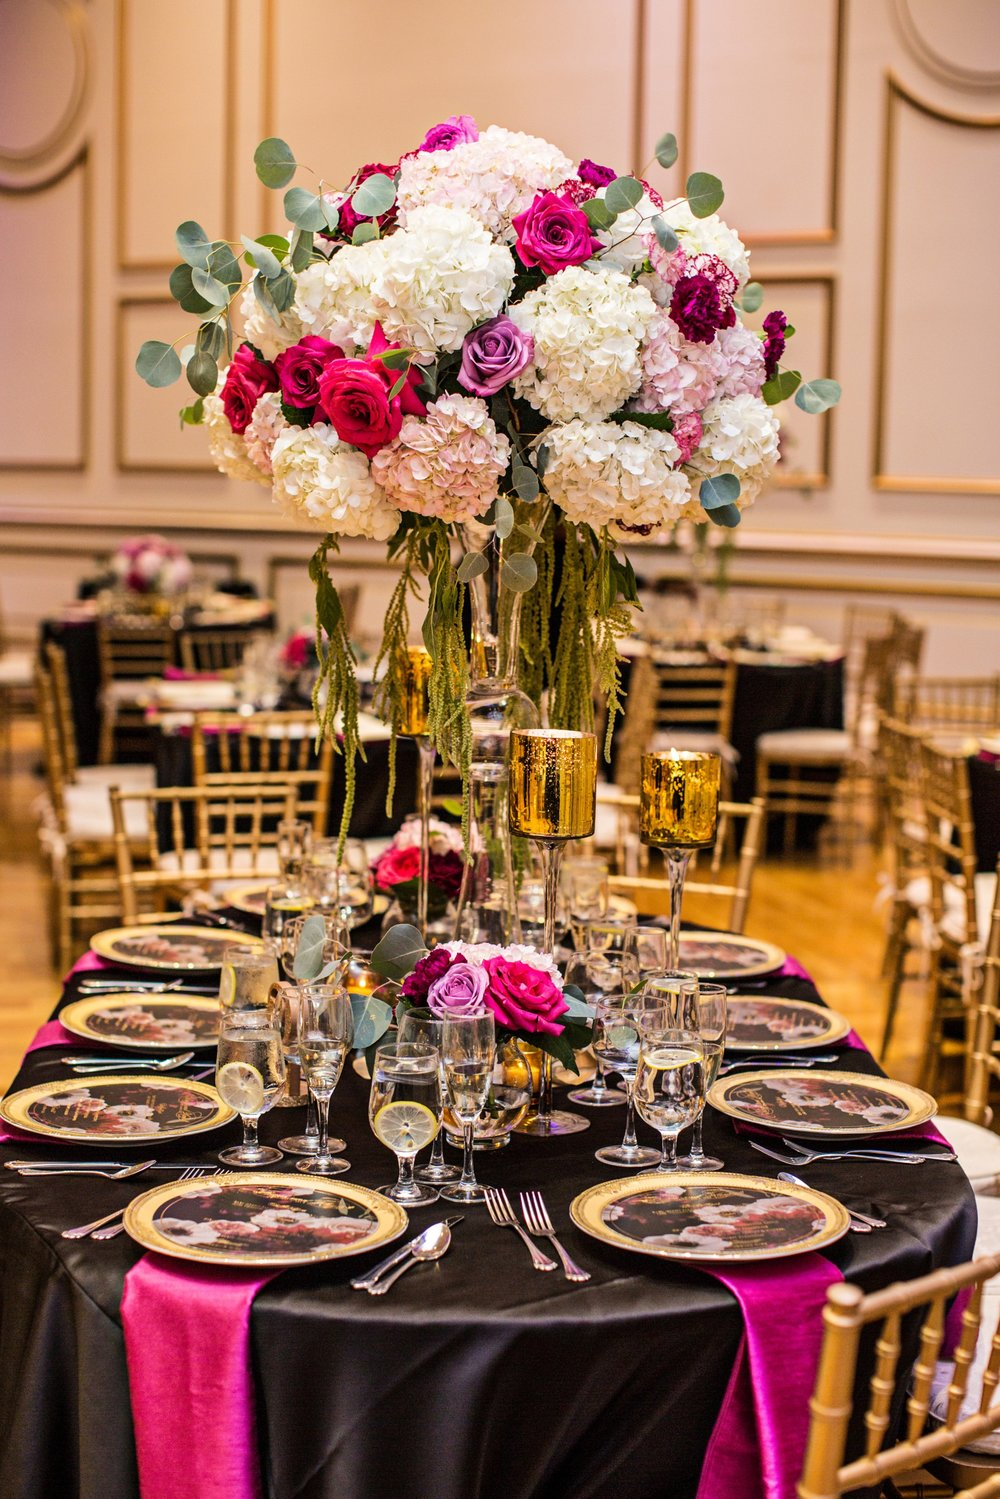 victorious-events-nyc-022-romie-kamali-tides-estate-wedding-nana-annan.jpg